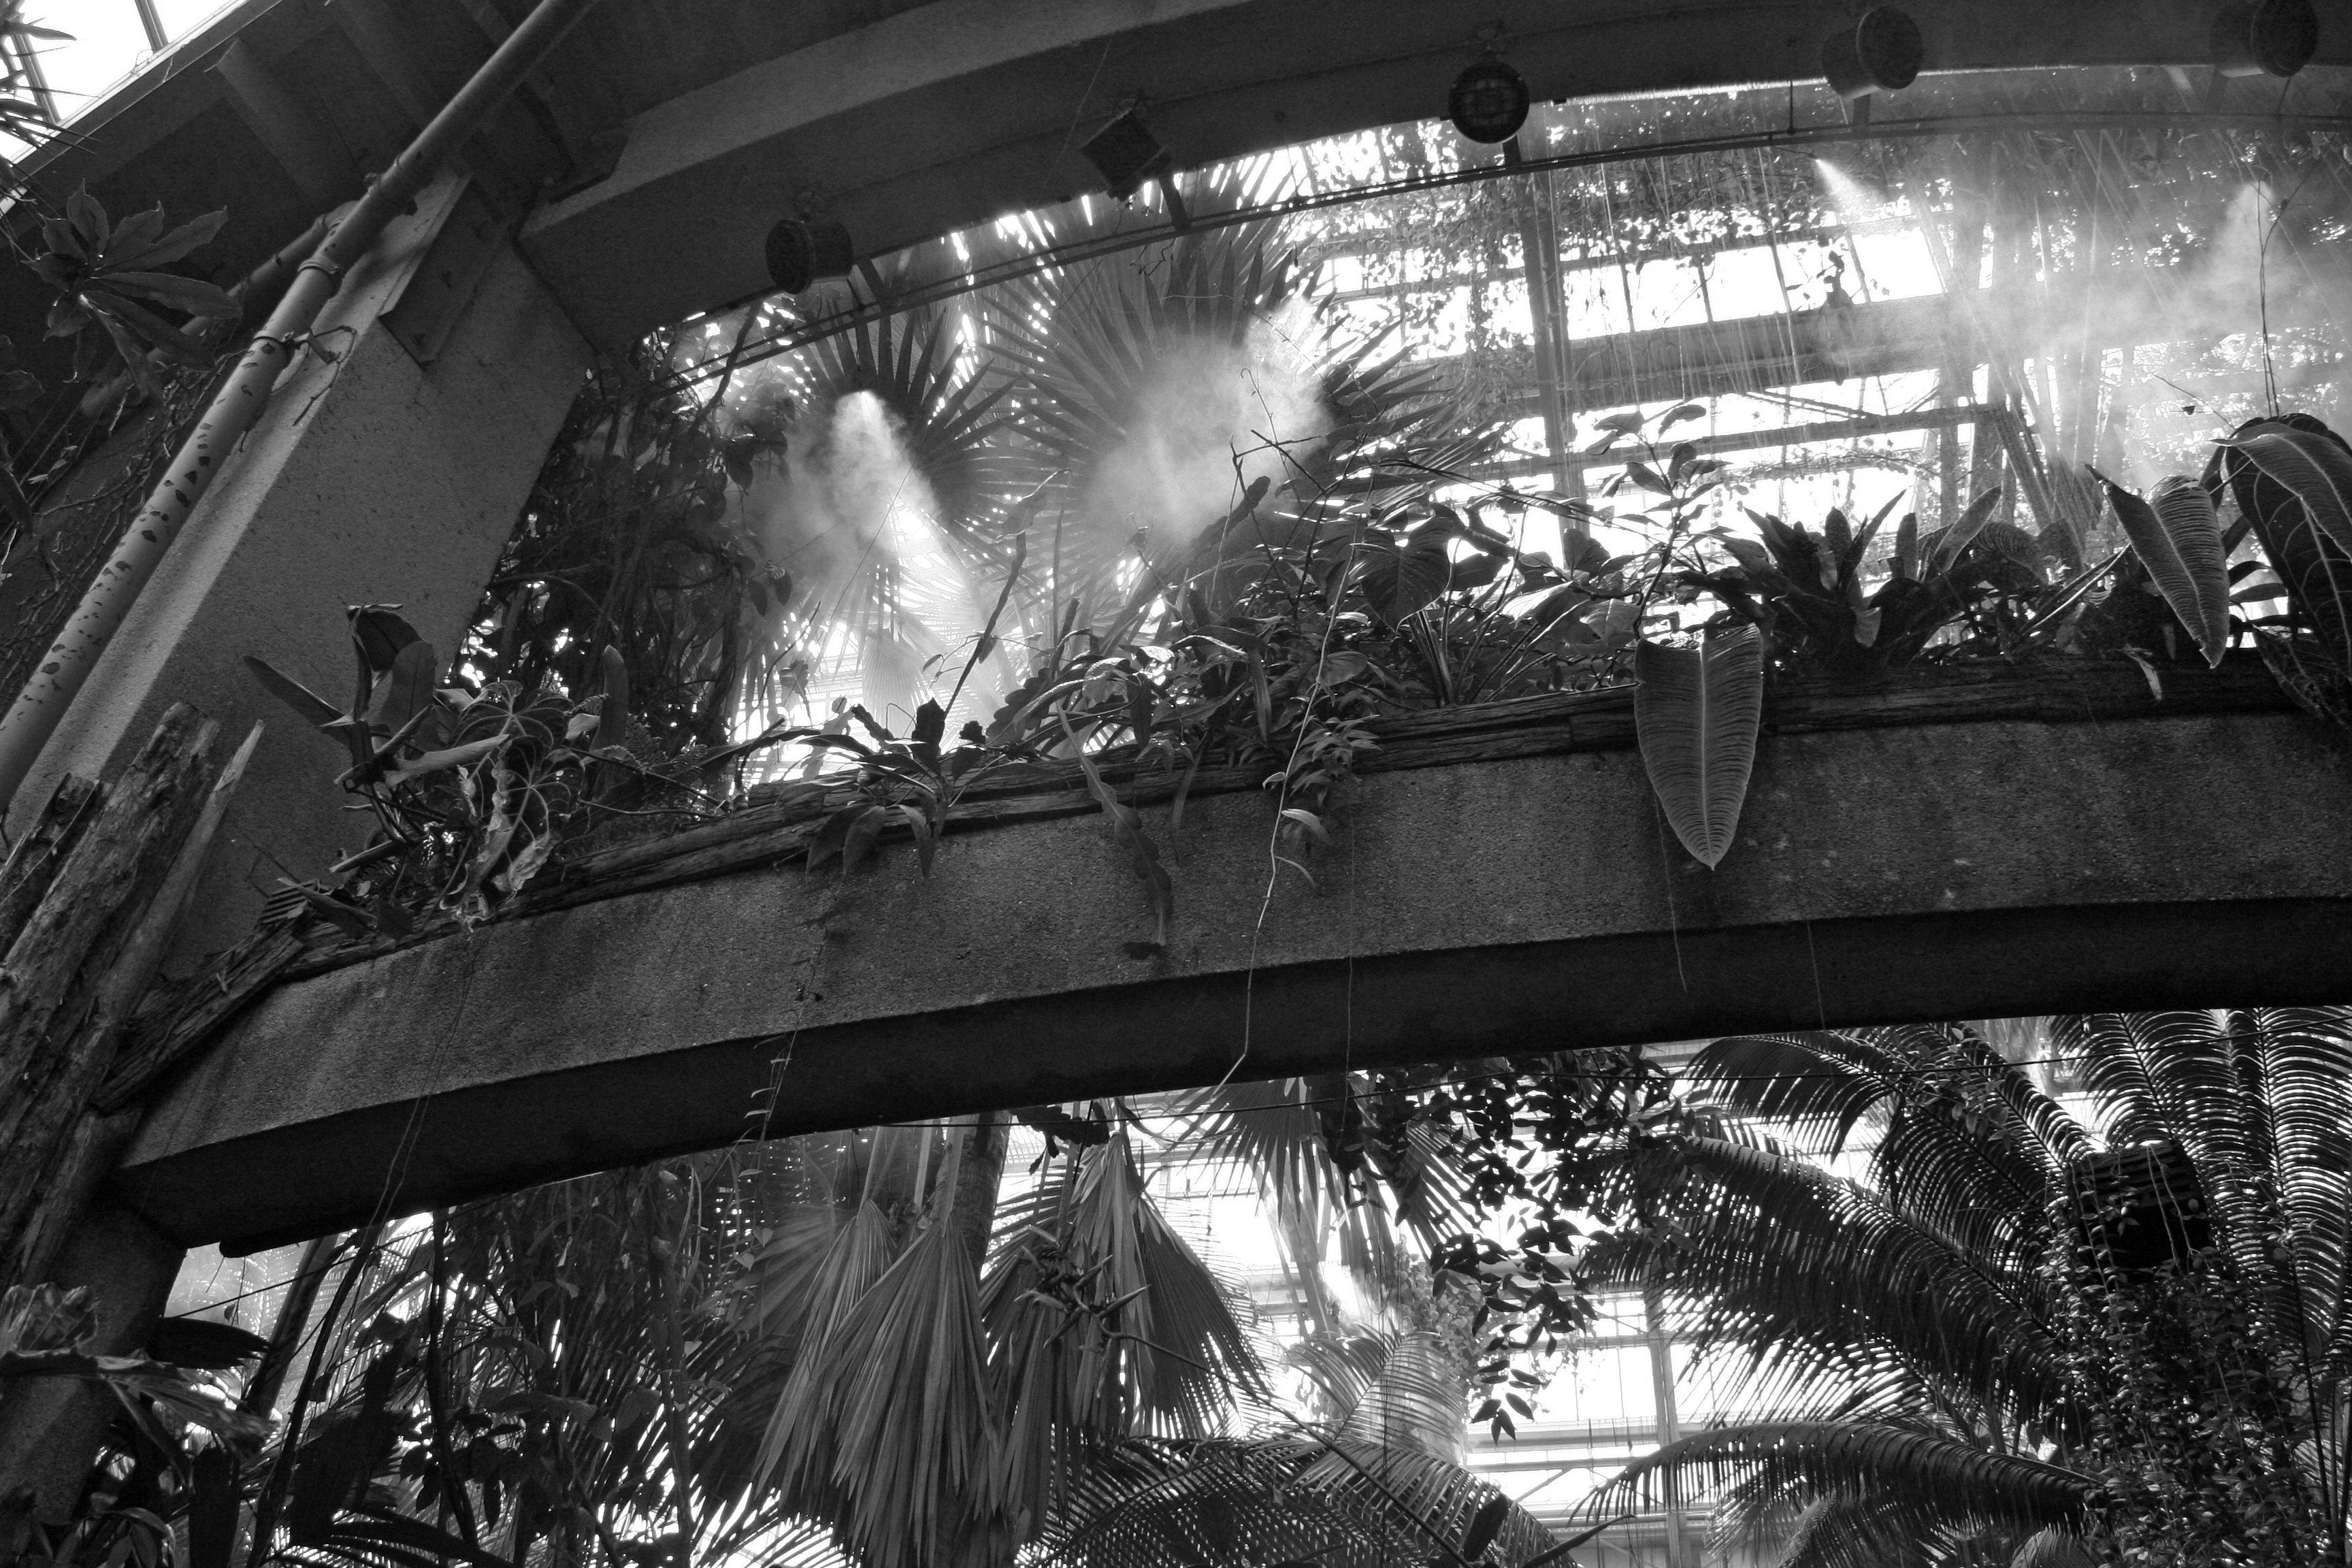 Botanical garden steam photo